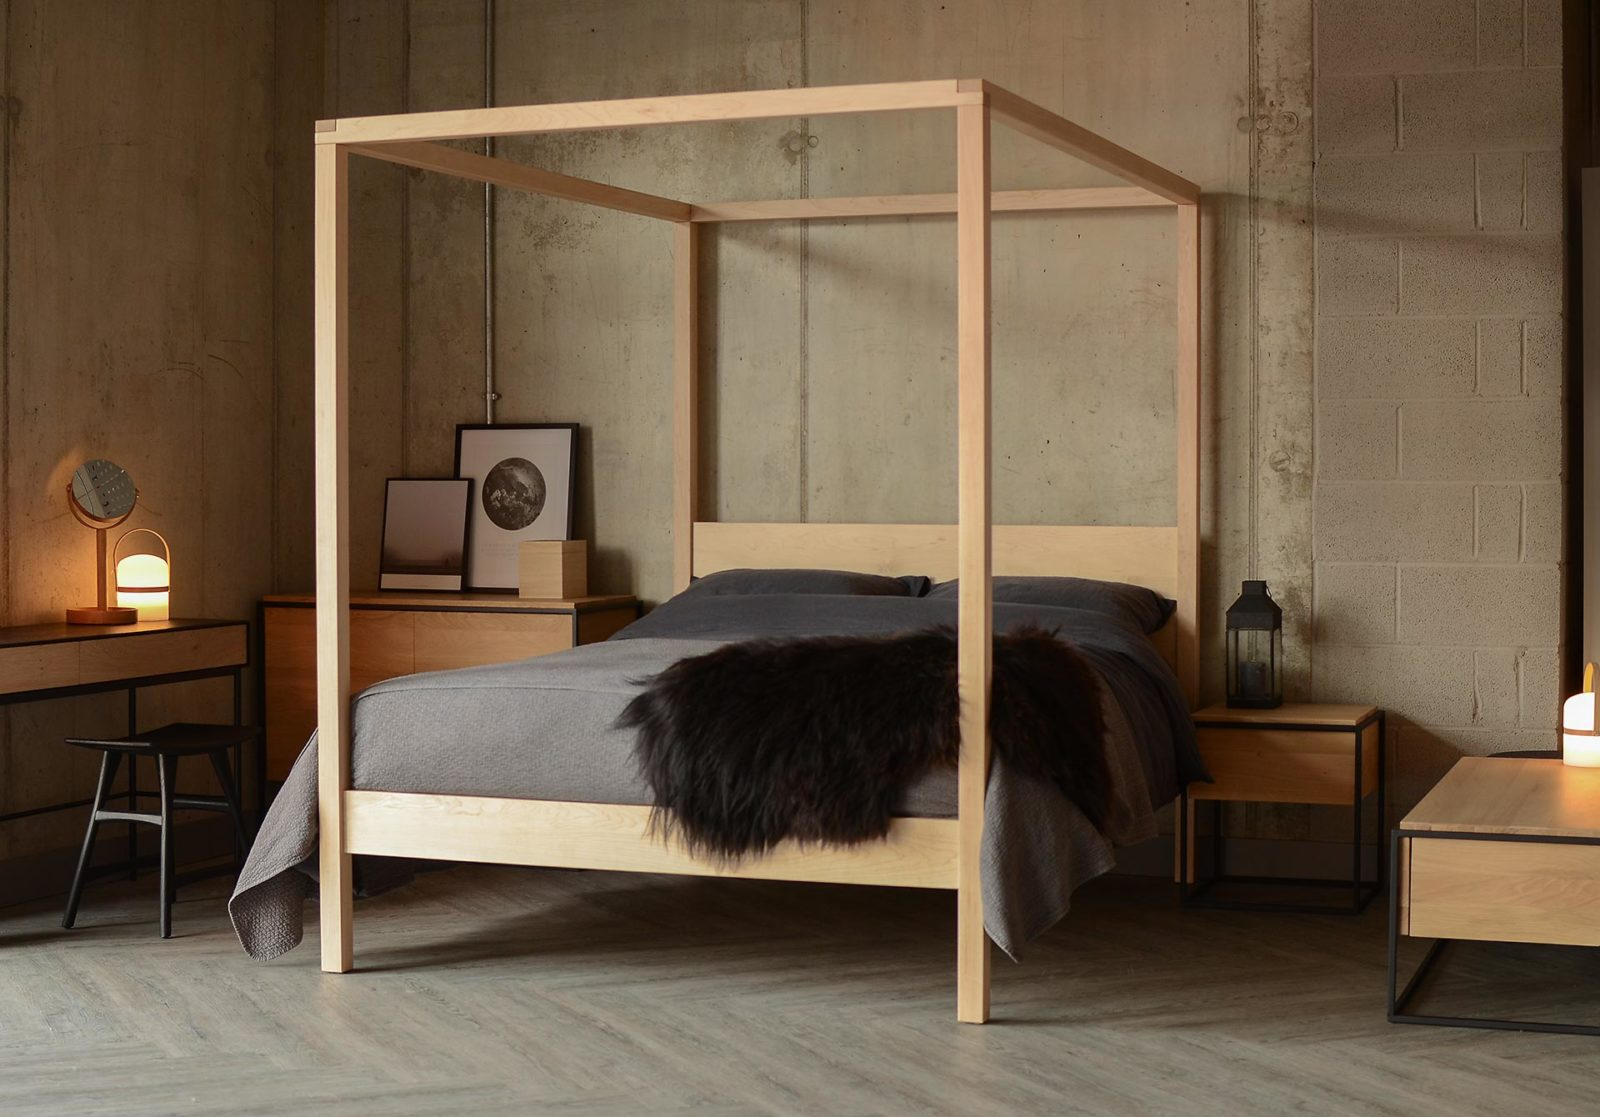 A contemporary handcrafted 4 poster bed this Orchid bed in Maple with dark bedding has a Scandinavian style